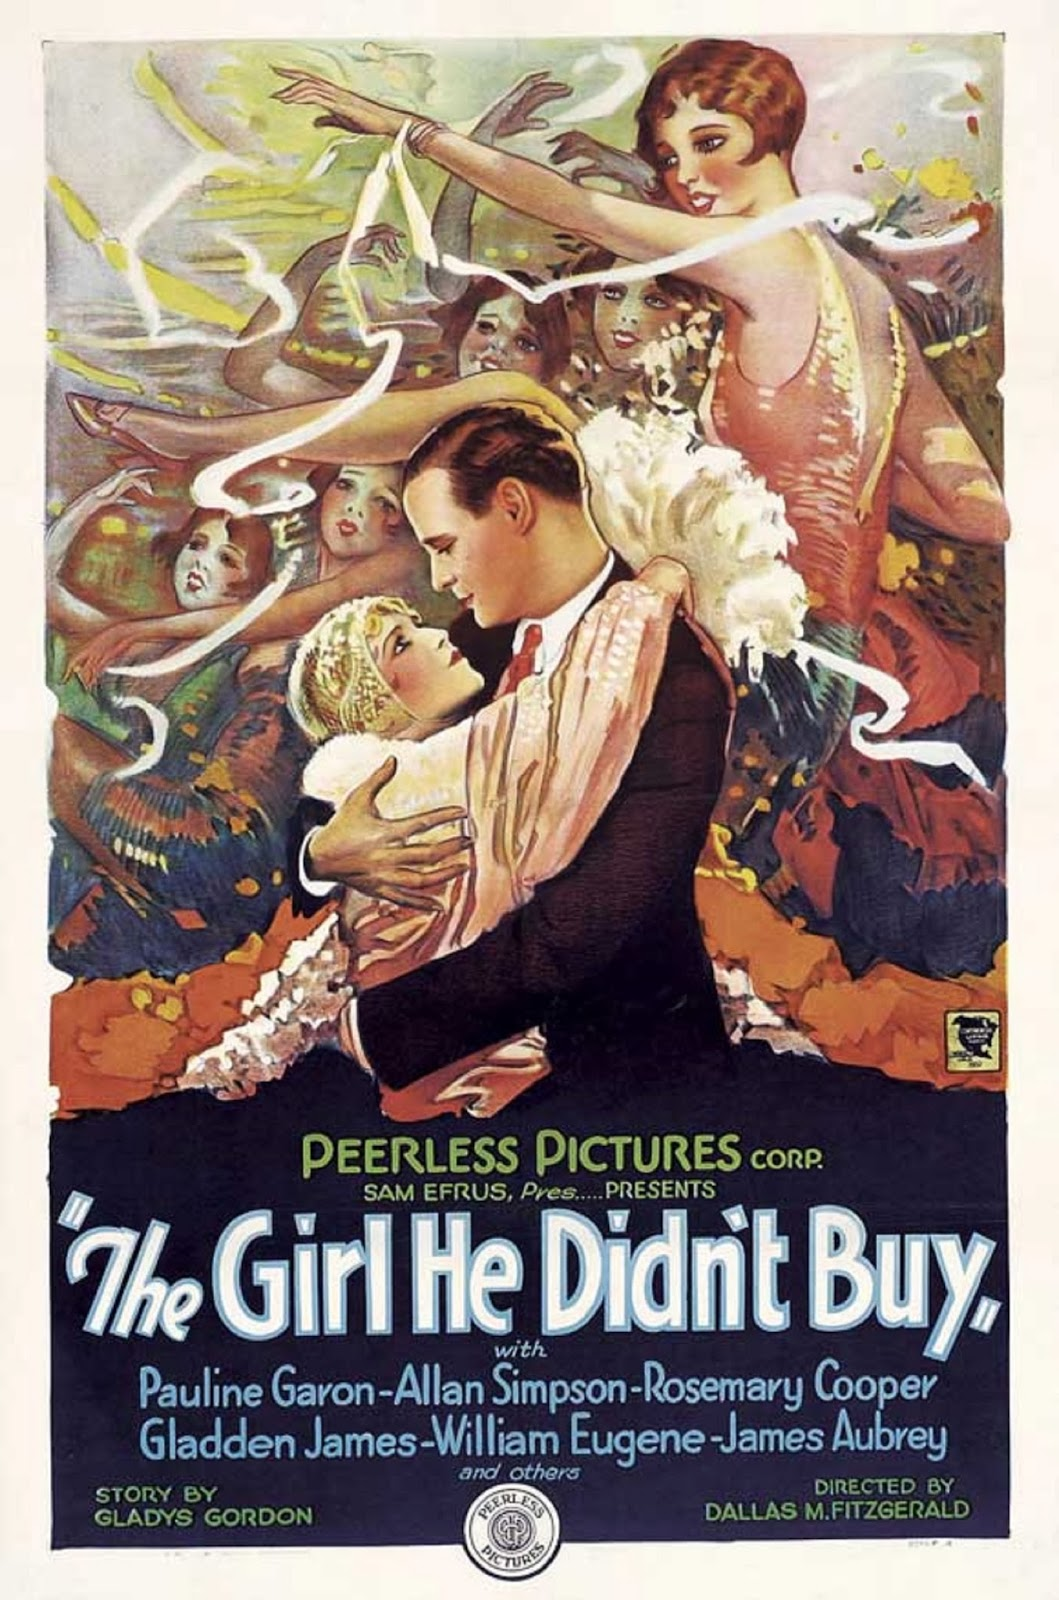 The Girl He Didn'tBuy